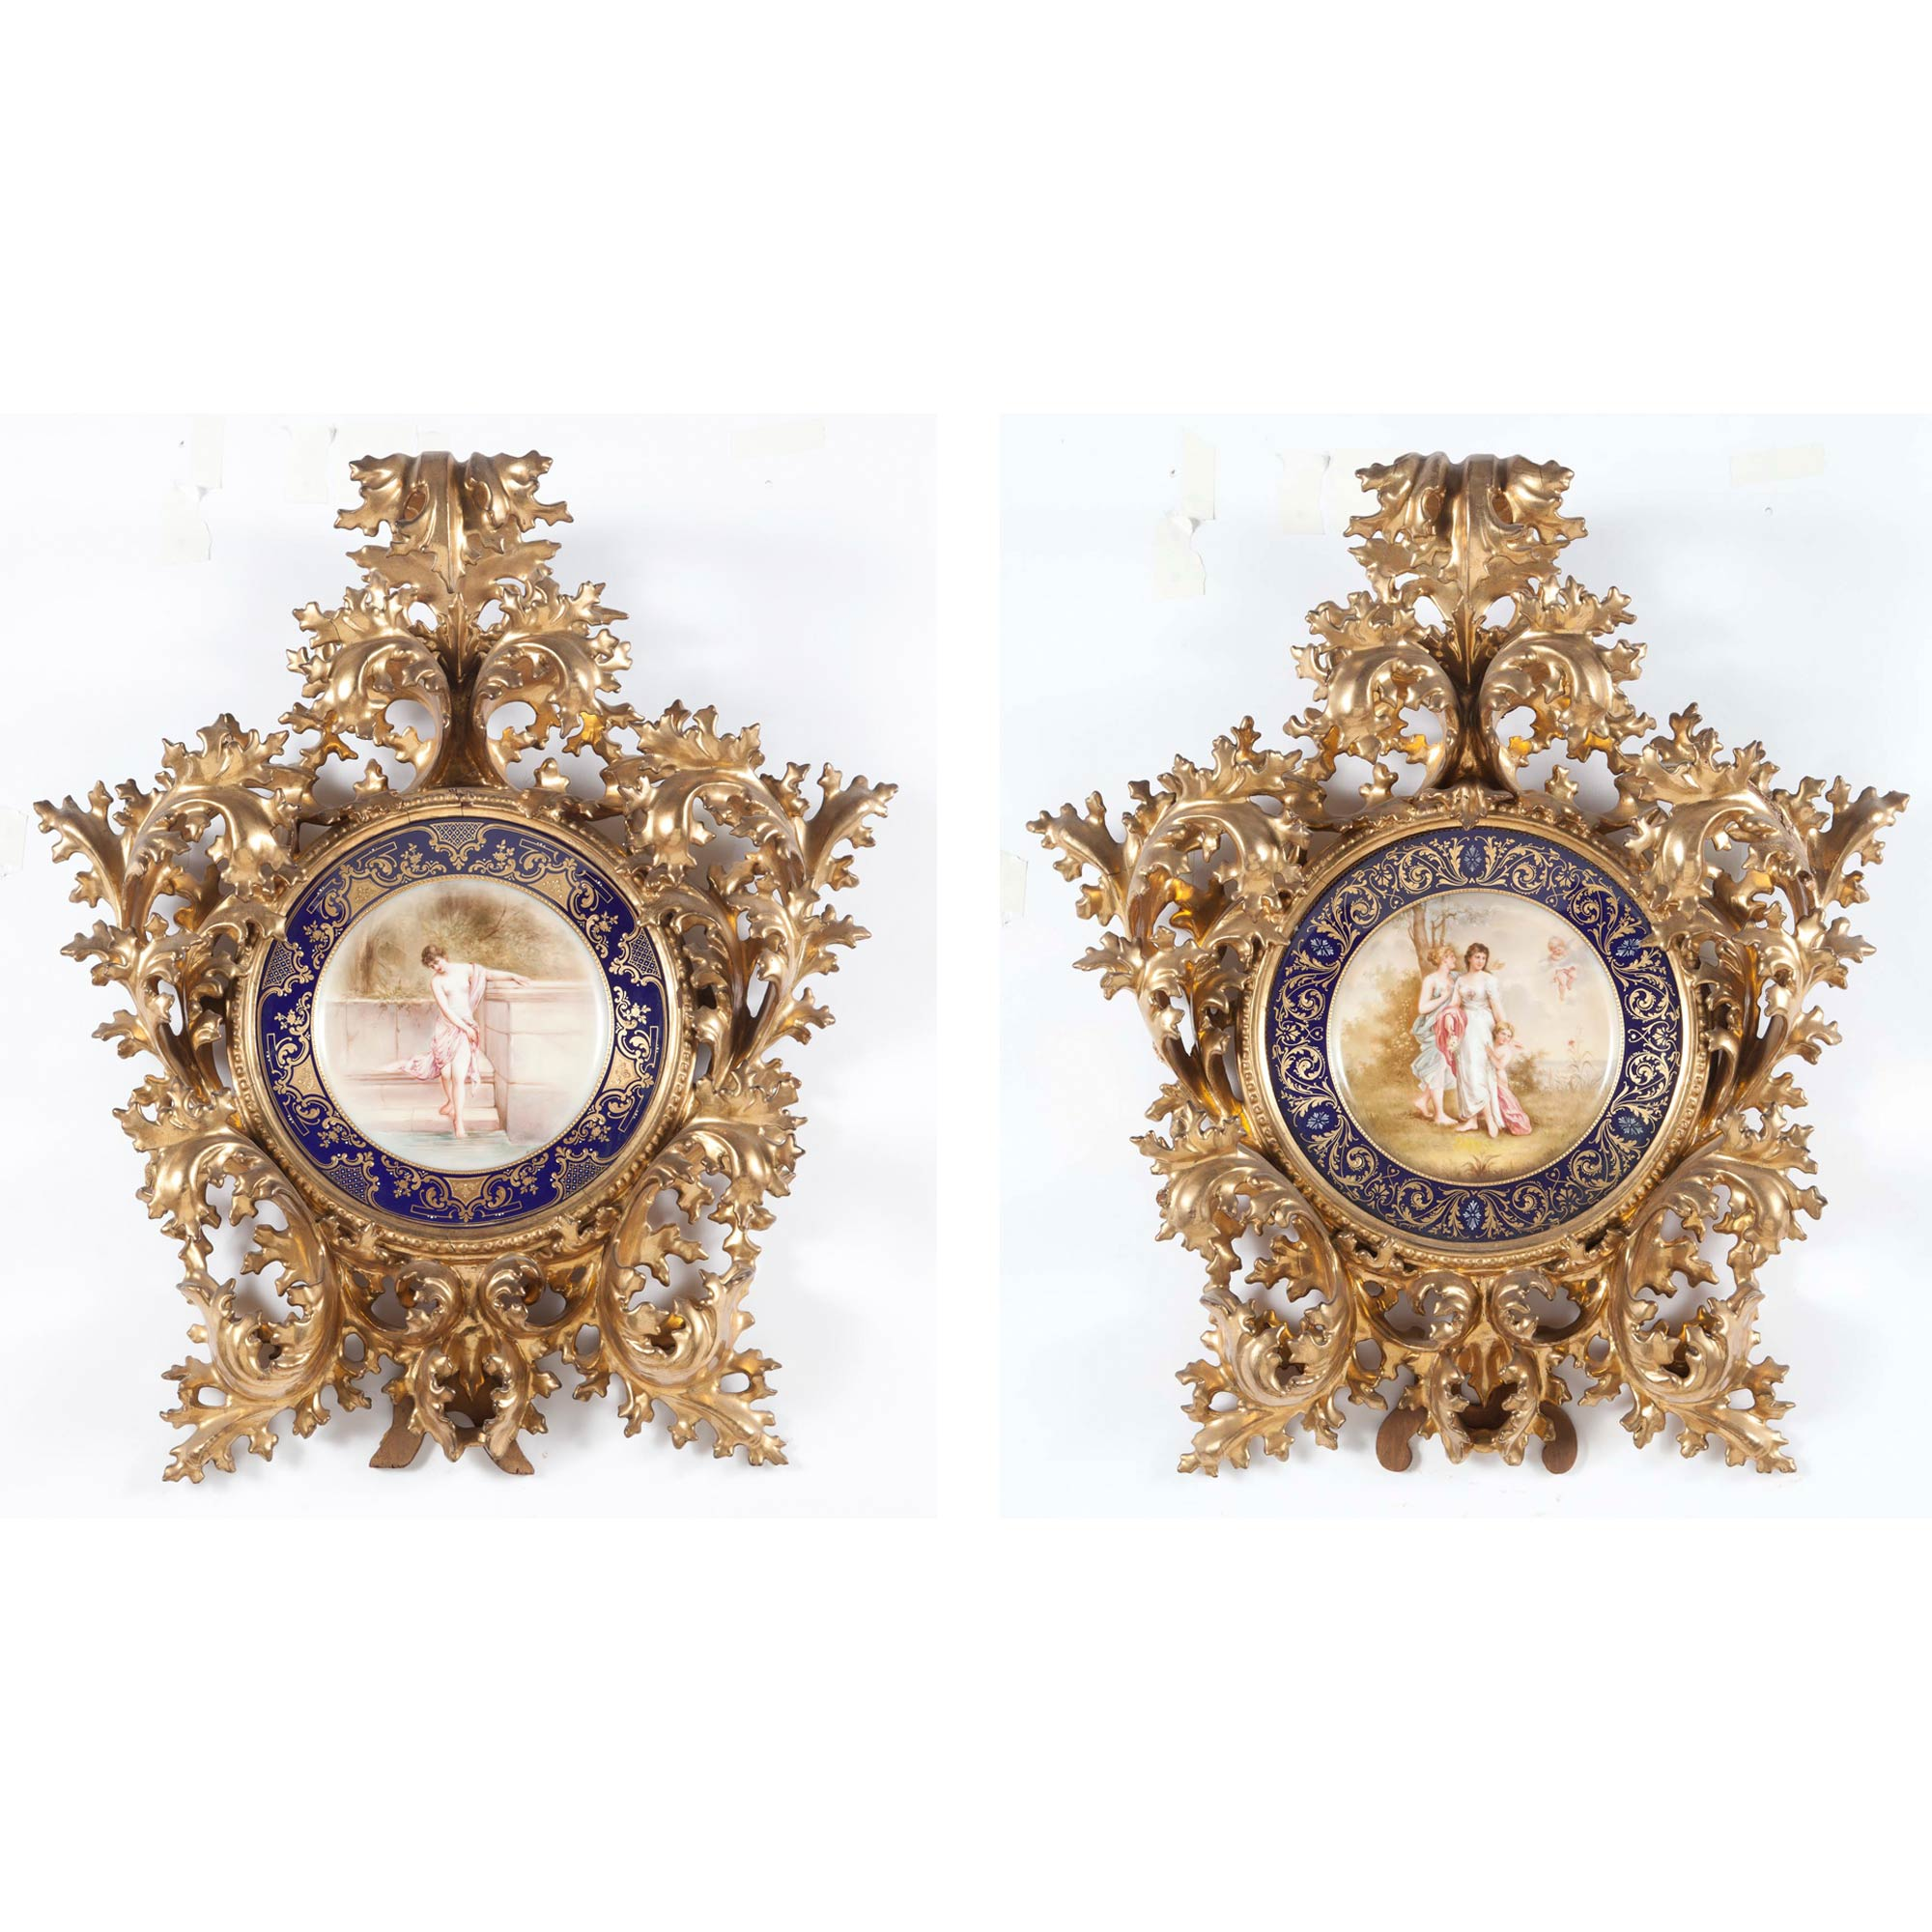 Lot image - Two Vienna Style Porcelain Cabinet Plates in Giltwood Frames